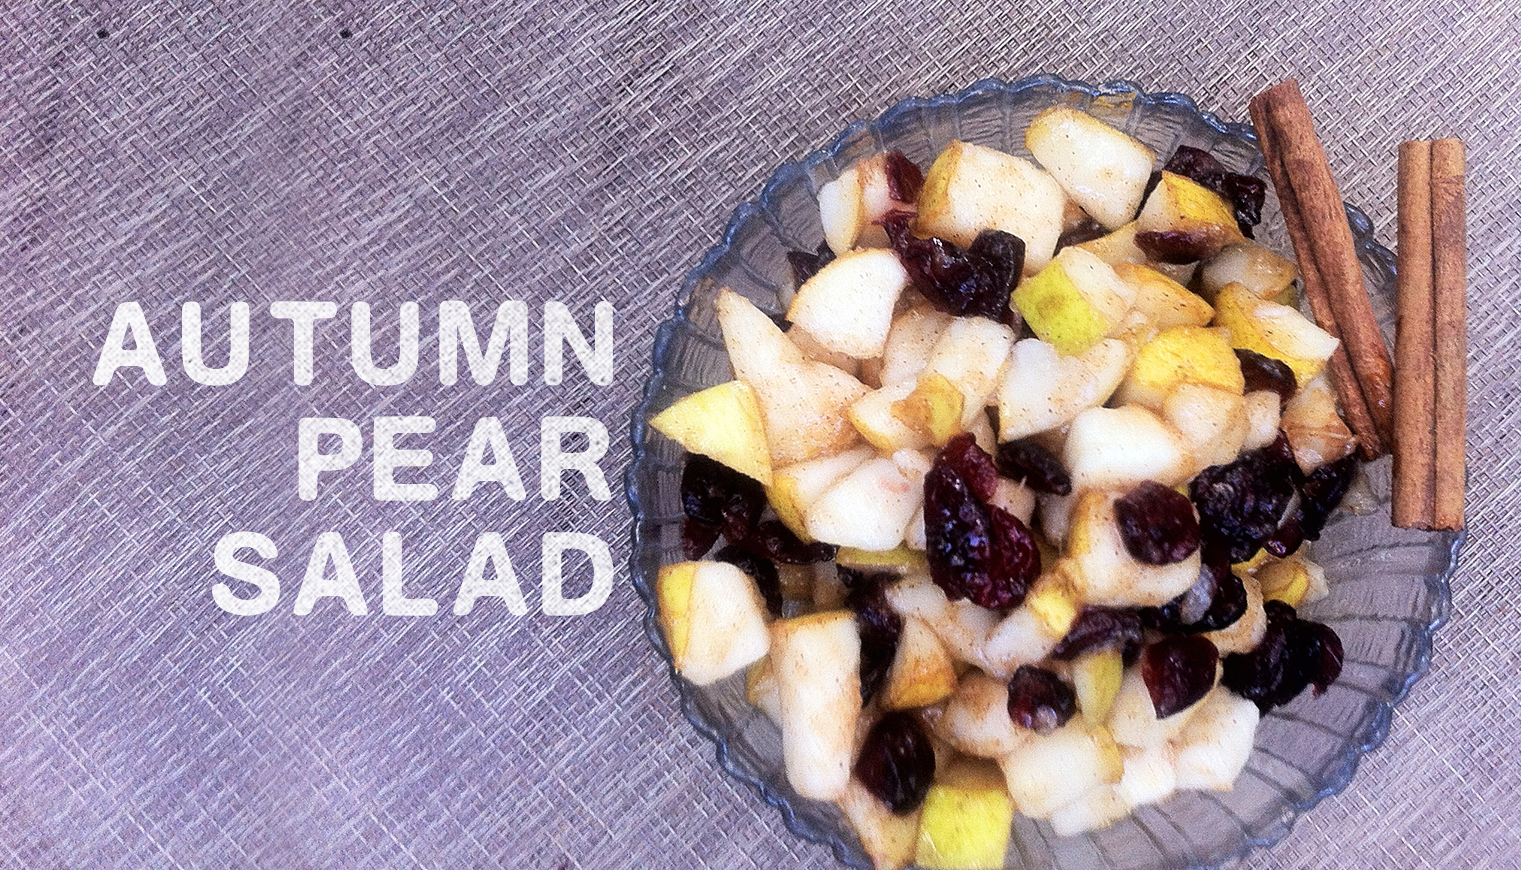 Autumn Pear Salad